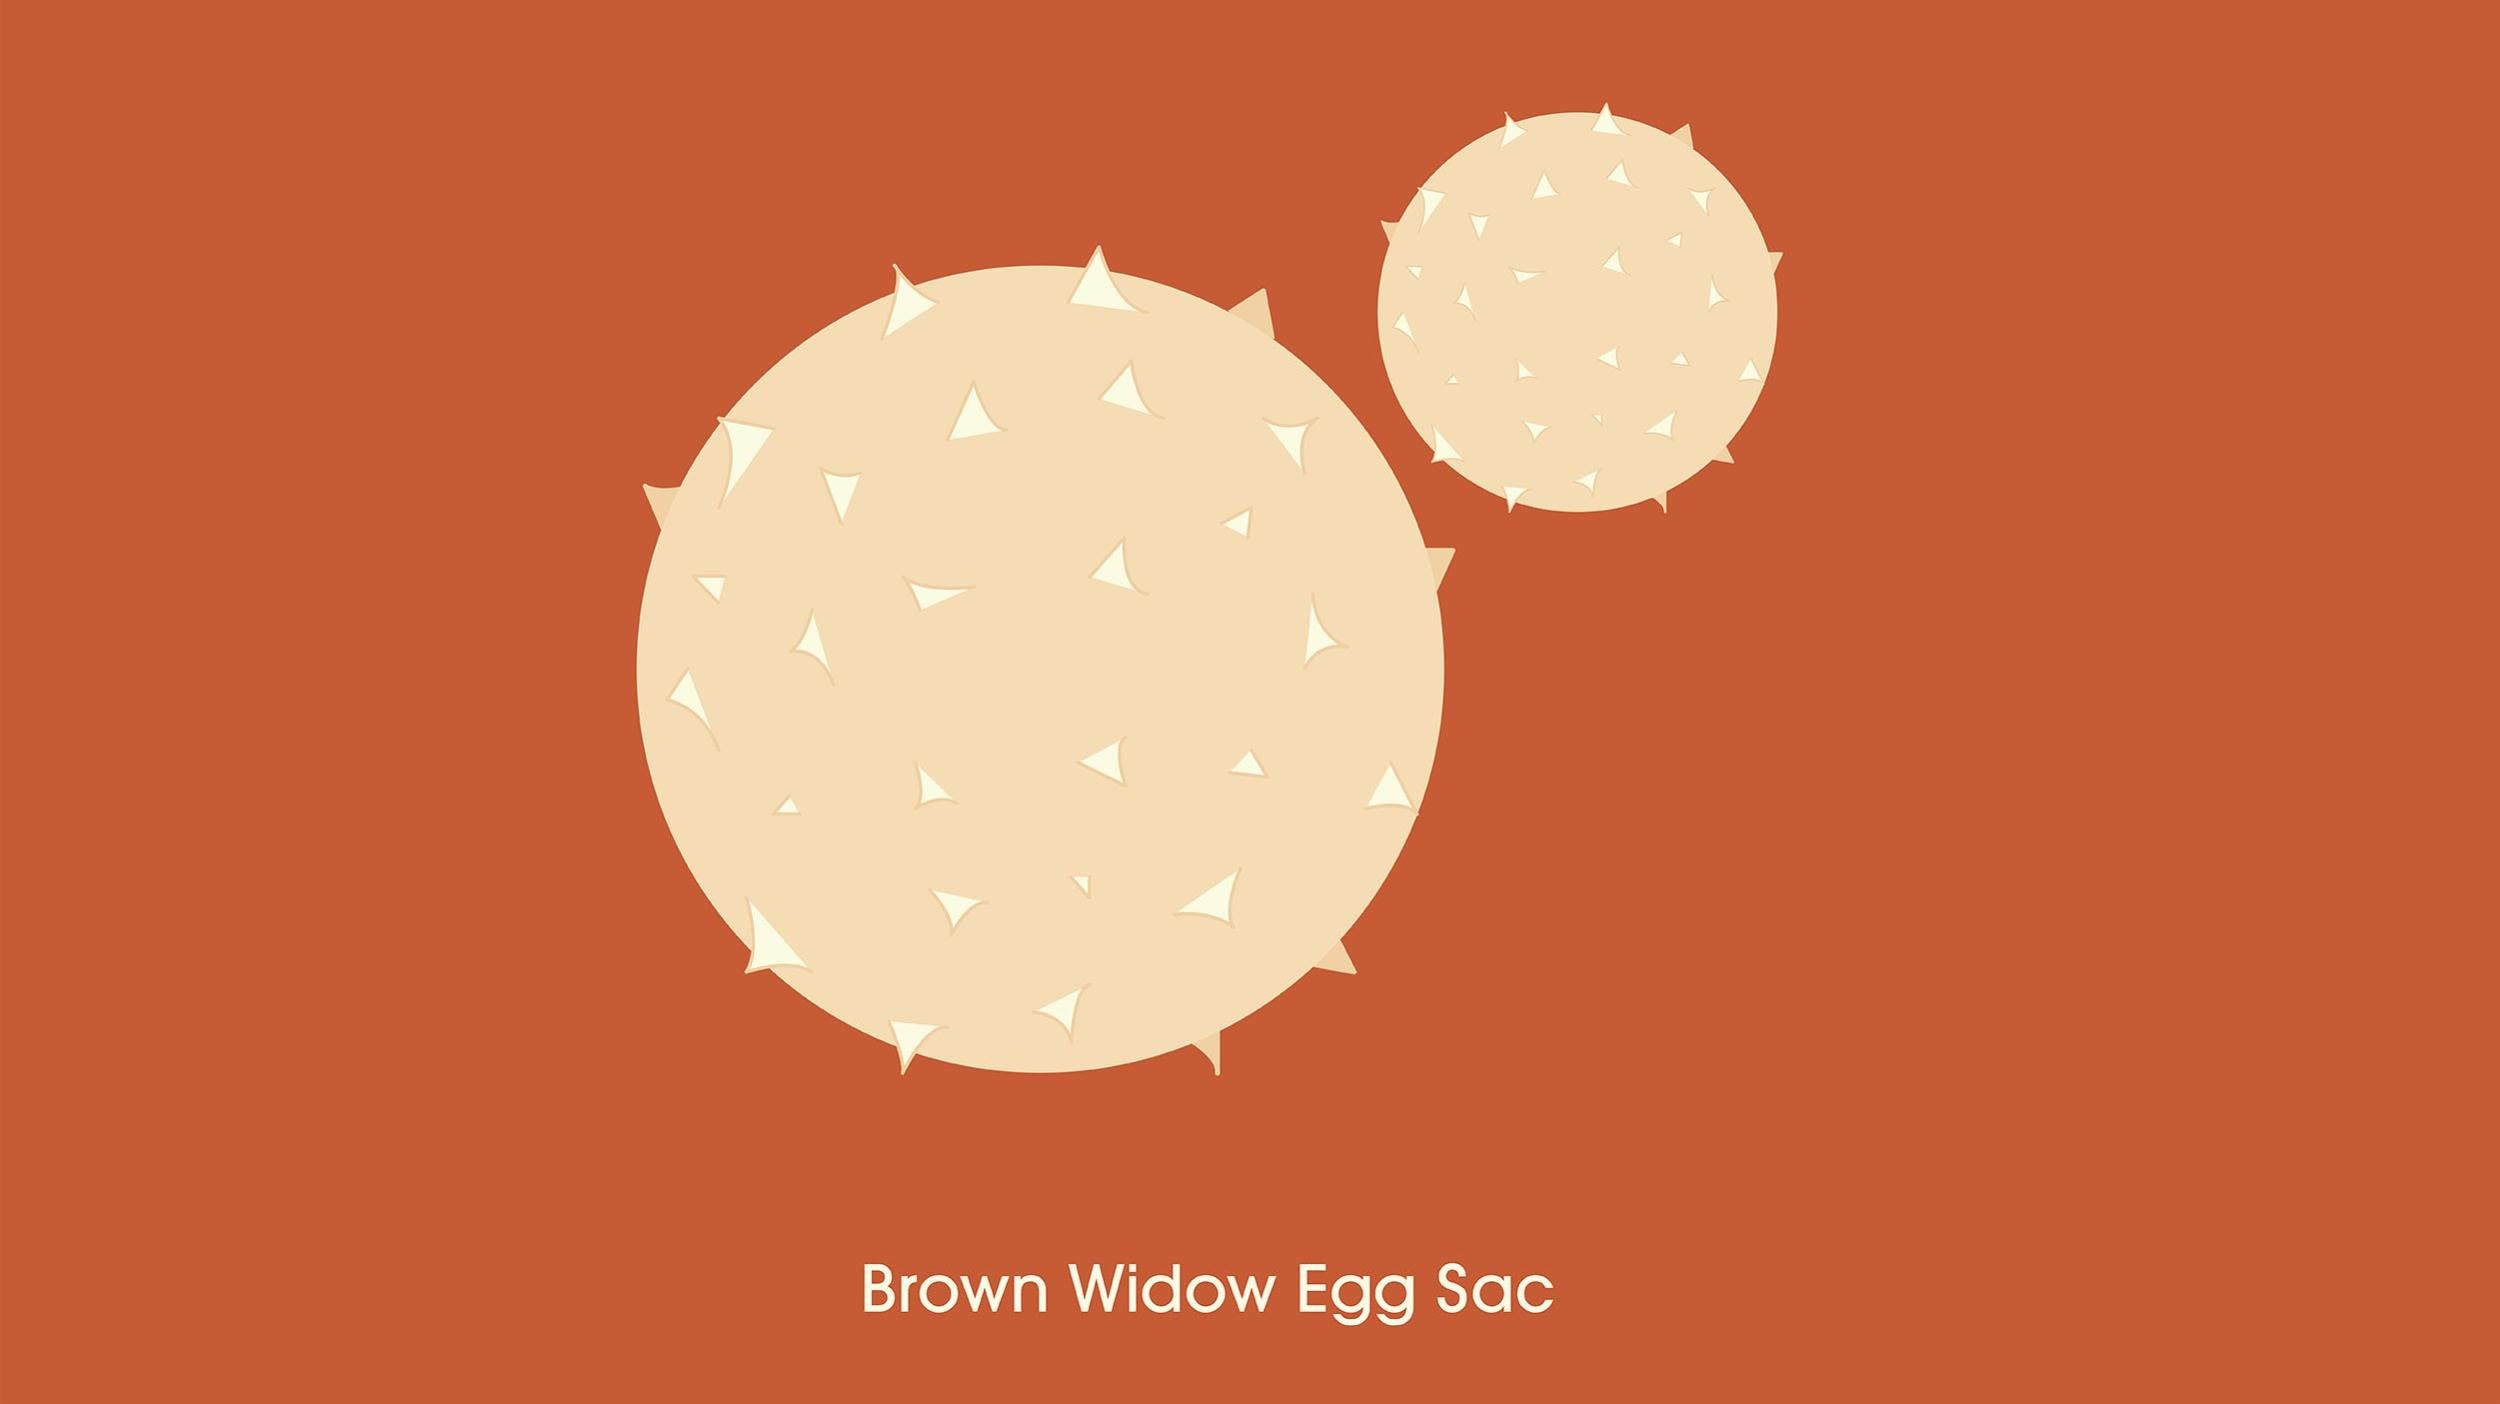 Illustration featuring close-up details of brown widow egg sacs.